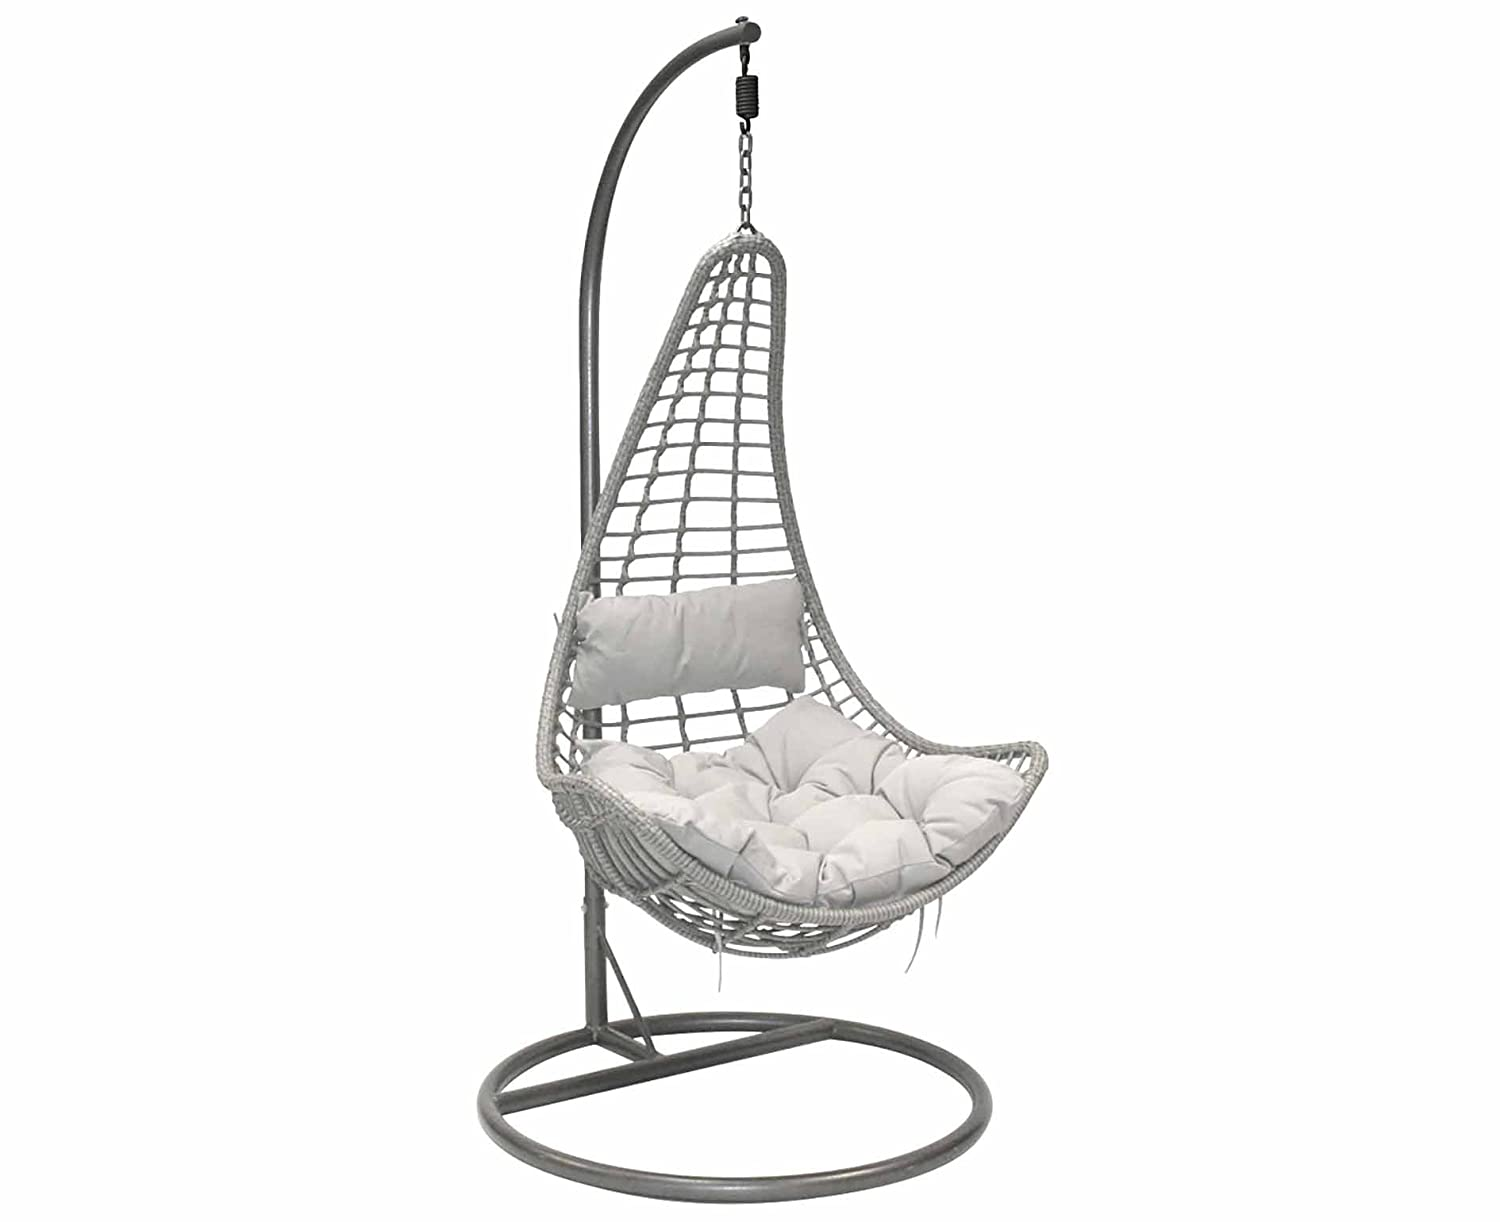 Hanging swing chair Stand Charles Bentley Rattan Hanging Swing Chair With Grey Cushion Color Grey Amazoncouk Kitchen Home Amazon Uk Charles Bentley Rattan Hanging Swing Chair With Grey Cushion Color